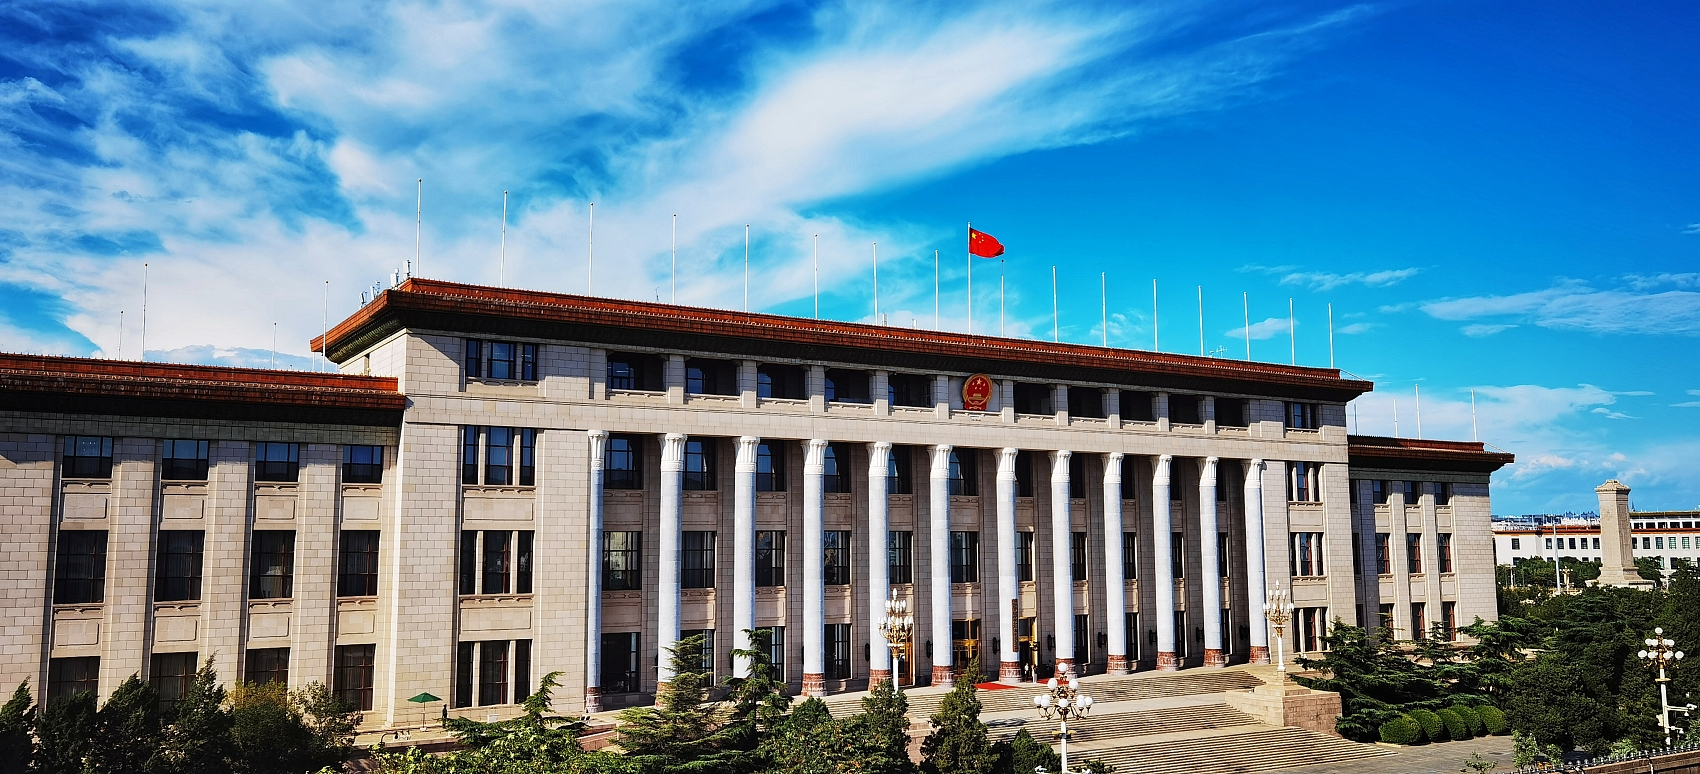 Foreign journalists in Beijing invited to cover annual political sessions